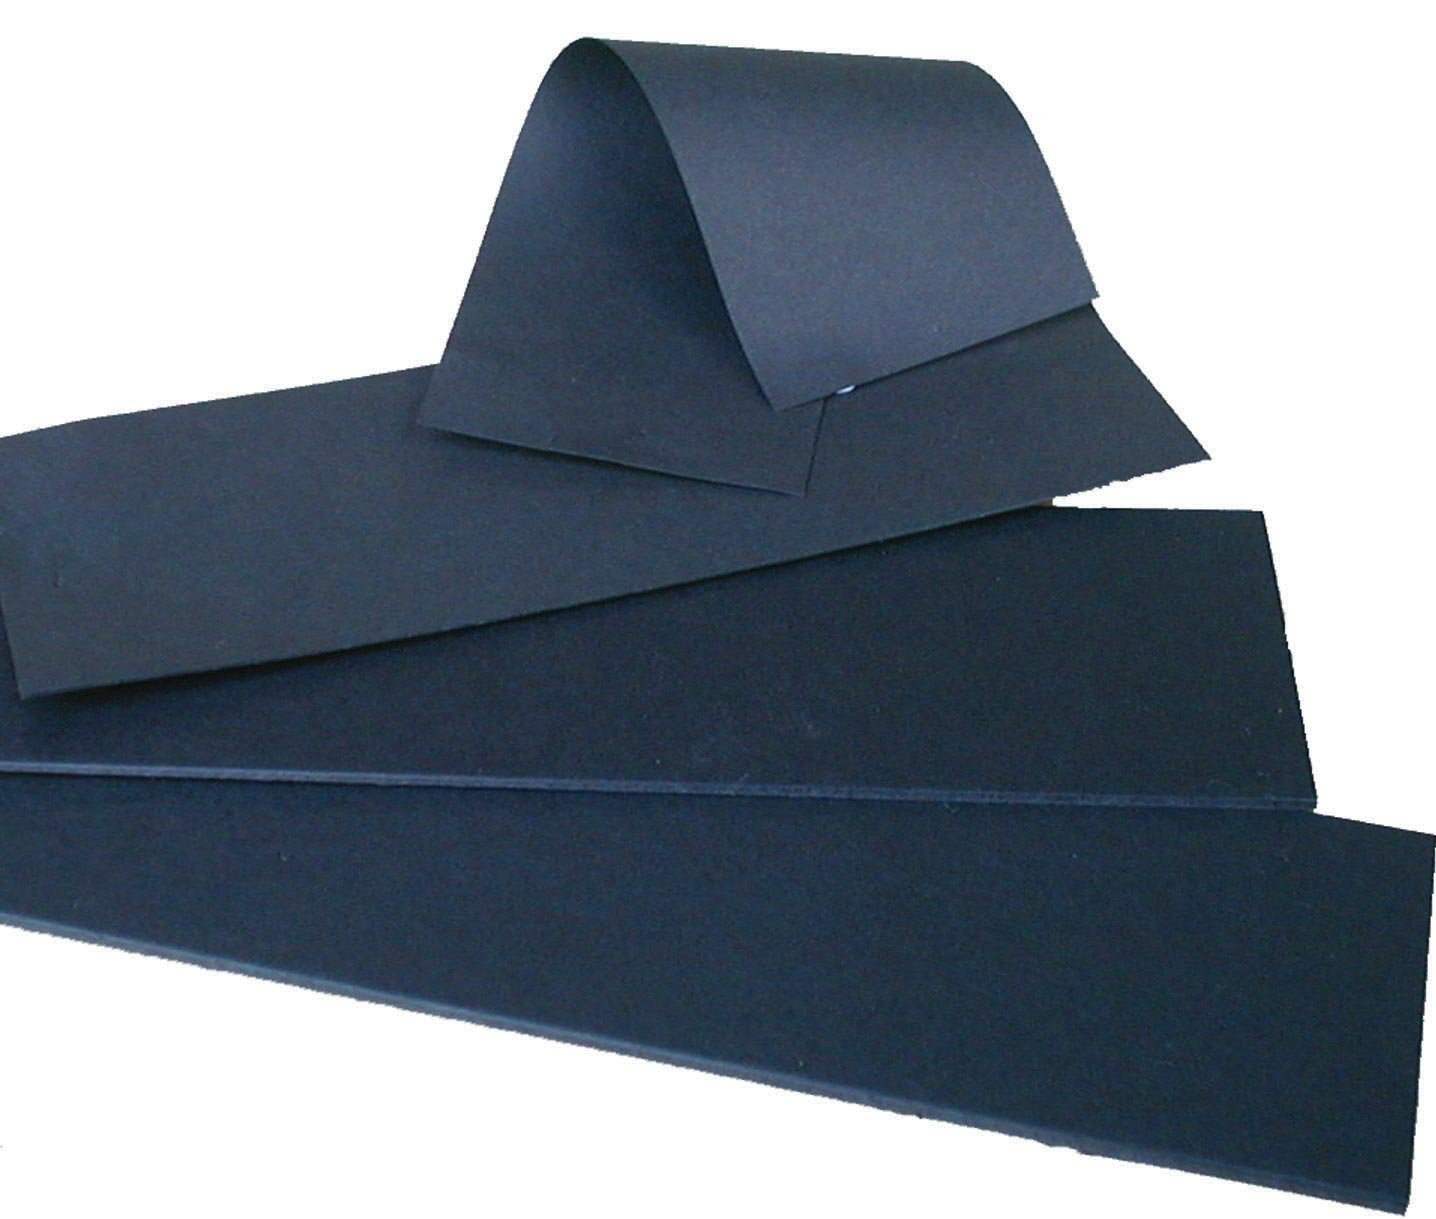 Creative Solid Black Paper 135gm A1 100 Sheets (Pack)